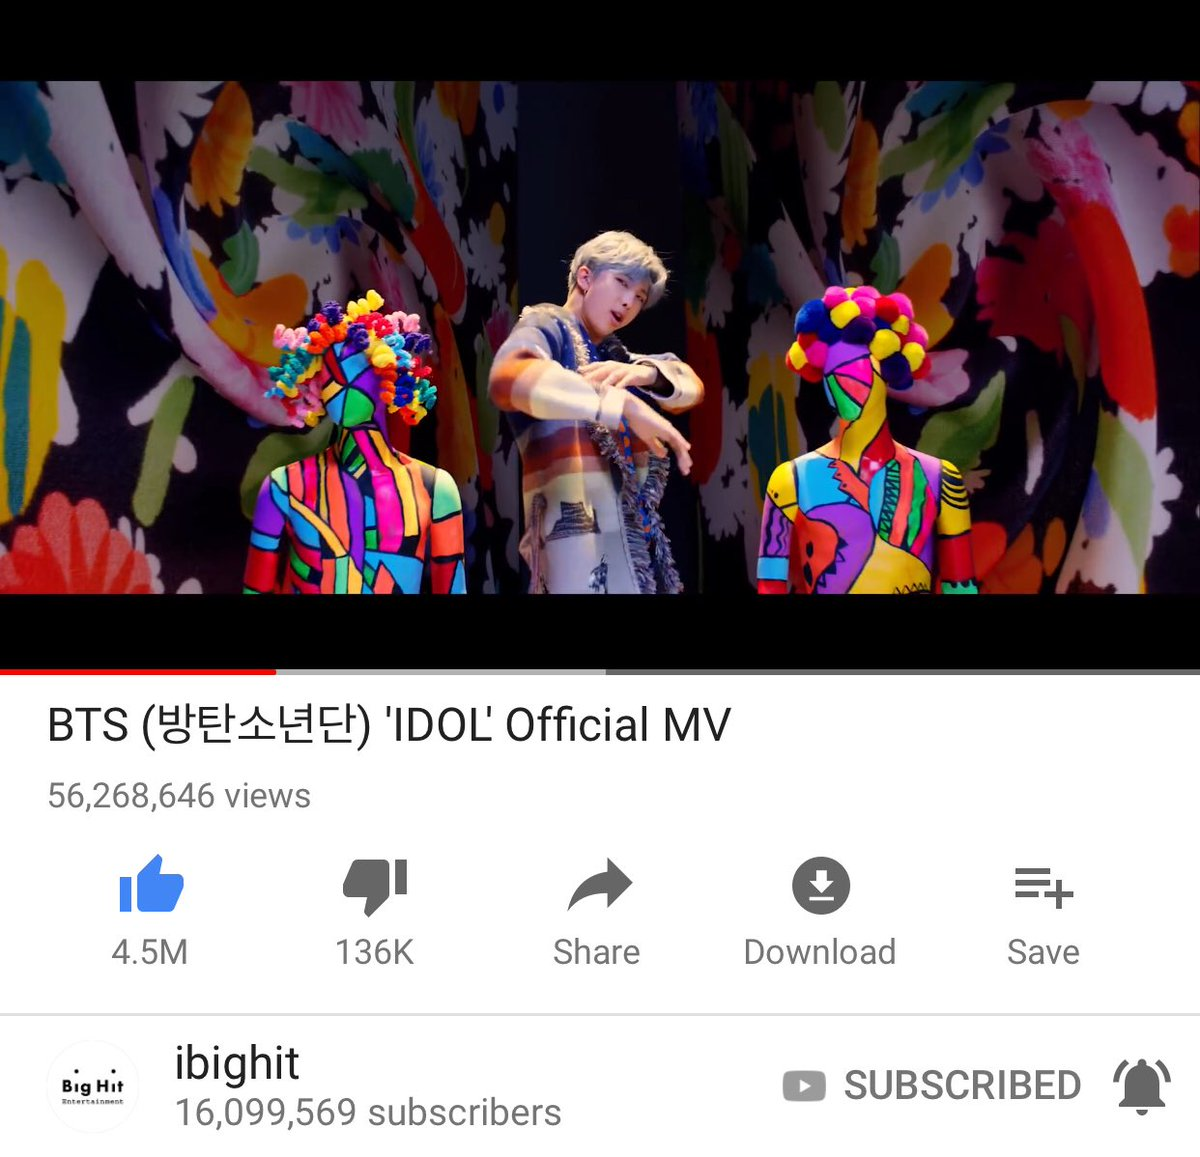 Worldwidebts On Twitter Real Time Bts Idol Official Mv Youtube View Please Await Confirmation For 24h Count Lets Keep Streaming Answernow Http Pbuzegyxa6e Pic Wjdsphkti2